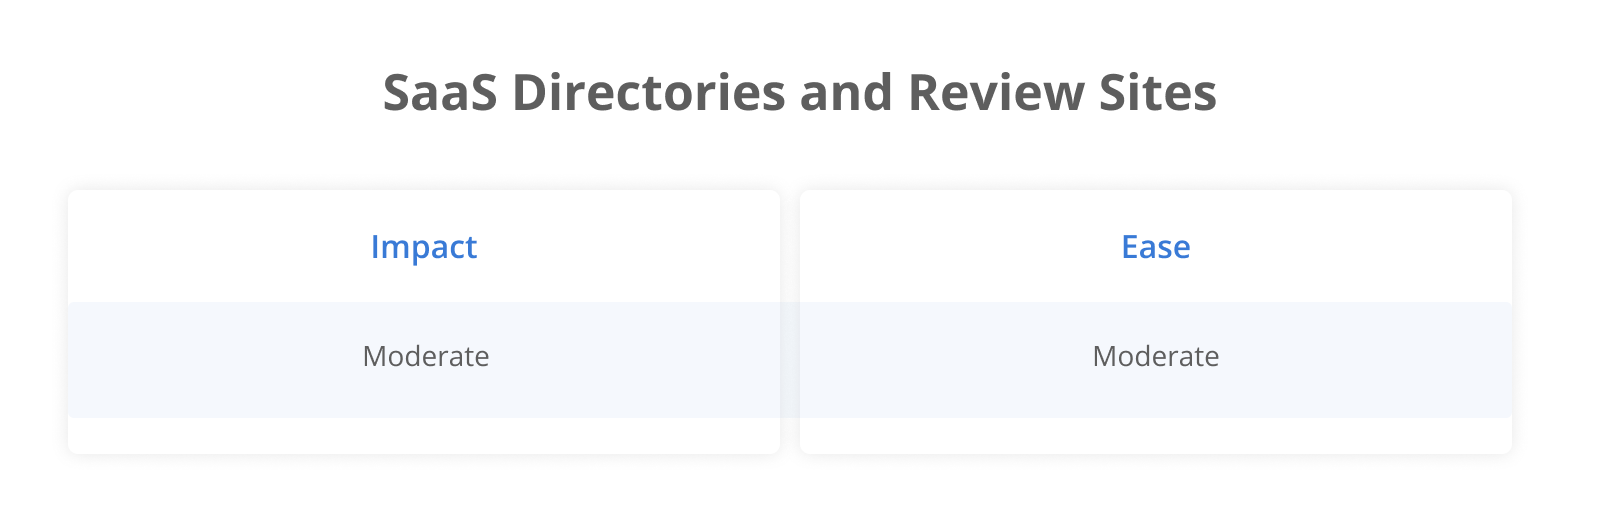 Saas Directories and Review Sites: Impact Moderate; Ease Moderate